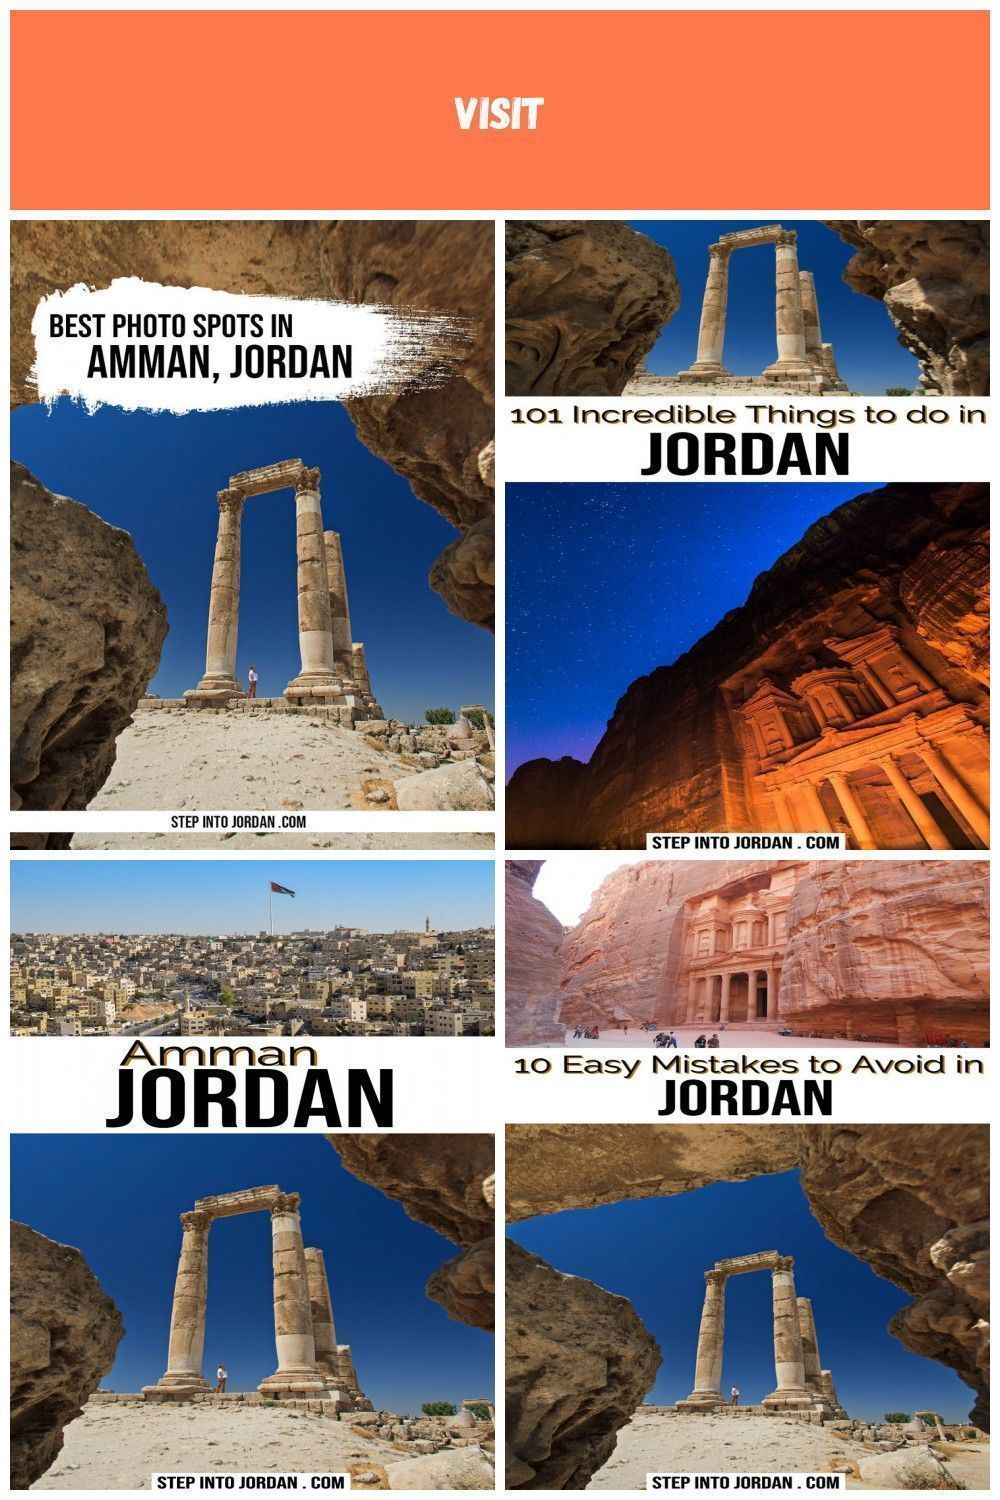 Best Photo Posts in Amman Jordan | Amman Jordan Travel | Instagrammable Places in Amman Jordan | Middle East Photos | Jordan Travel Advice #jordan #amman #middleeast #jordantravel #jordan #ammanjordan Best Photo Posts in Amman Jordan | Amman Jordan Travel | Instagrammable Places in Amman Jordan | Middle East Photos | Jordan Travel Advice #jordan #amman #middleeast #jordantravel #jordan jordans Travel #ammanjordan Best Photo Posts in Amman Jordan | Amman Jordan Travel | Instagrammable Places in A #ammanjordan